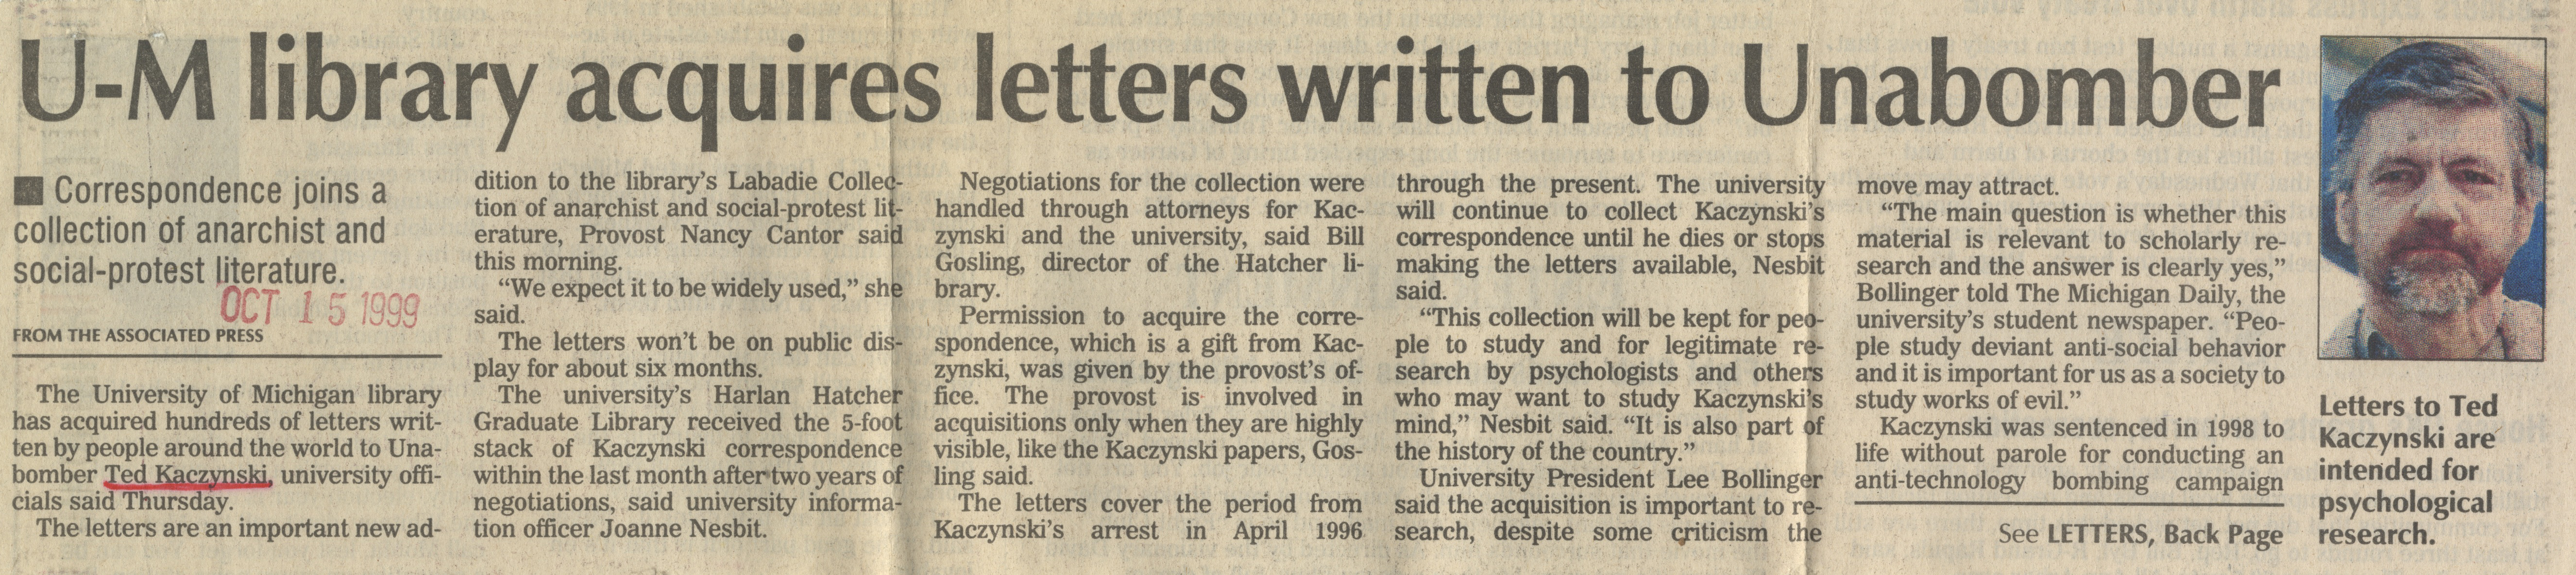 U-M Library Acquires Letters Written To Unabomber image